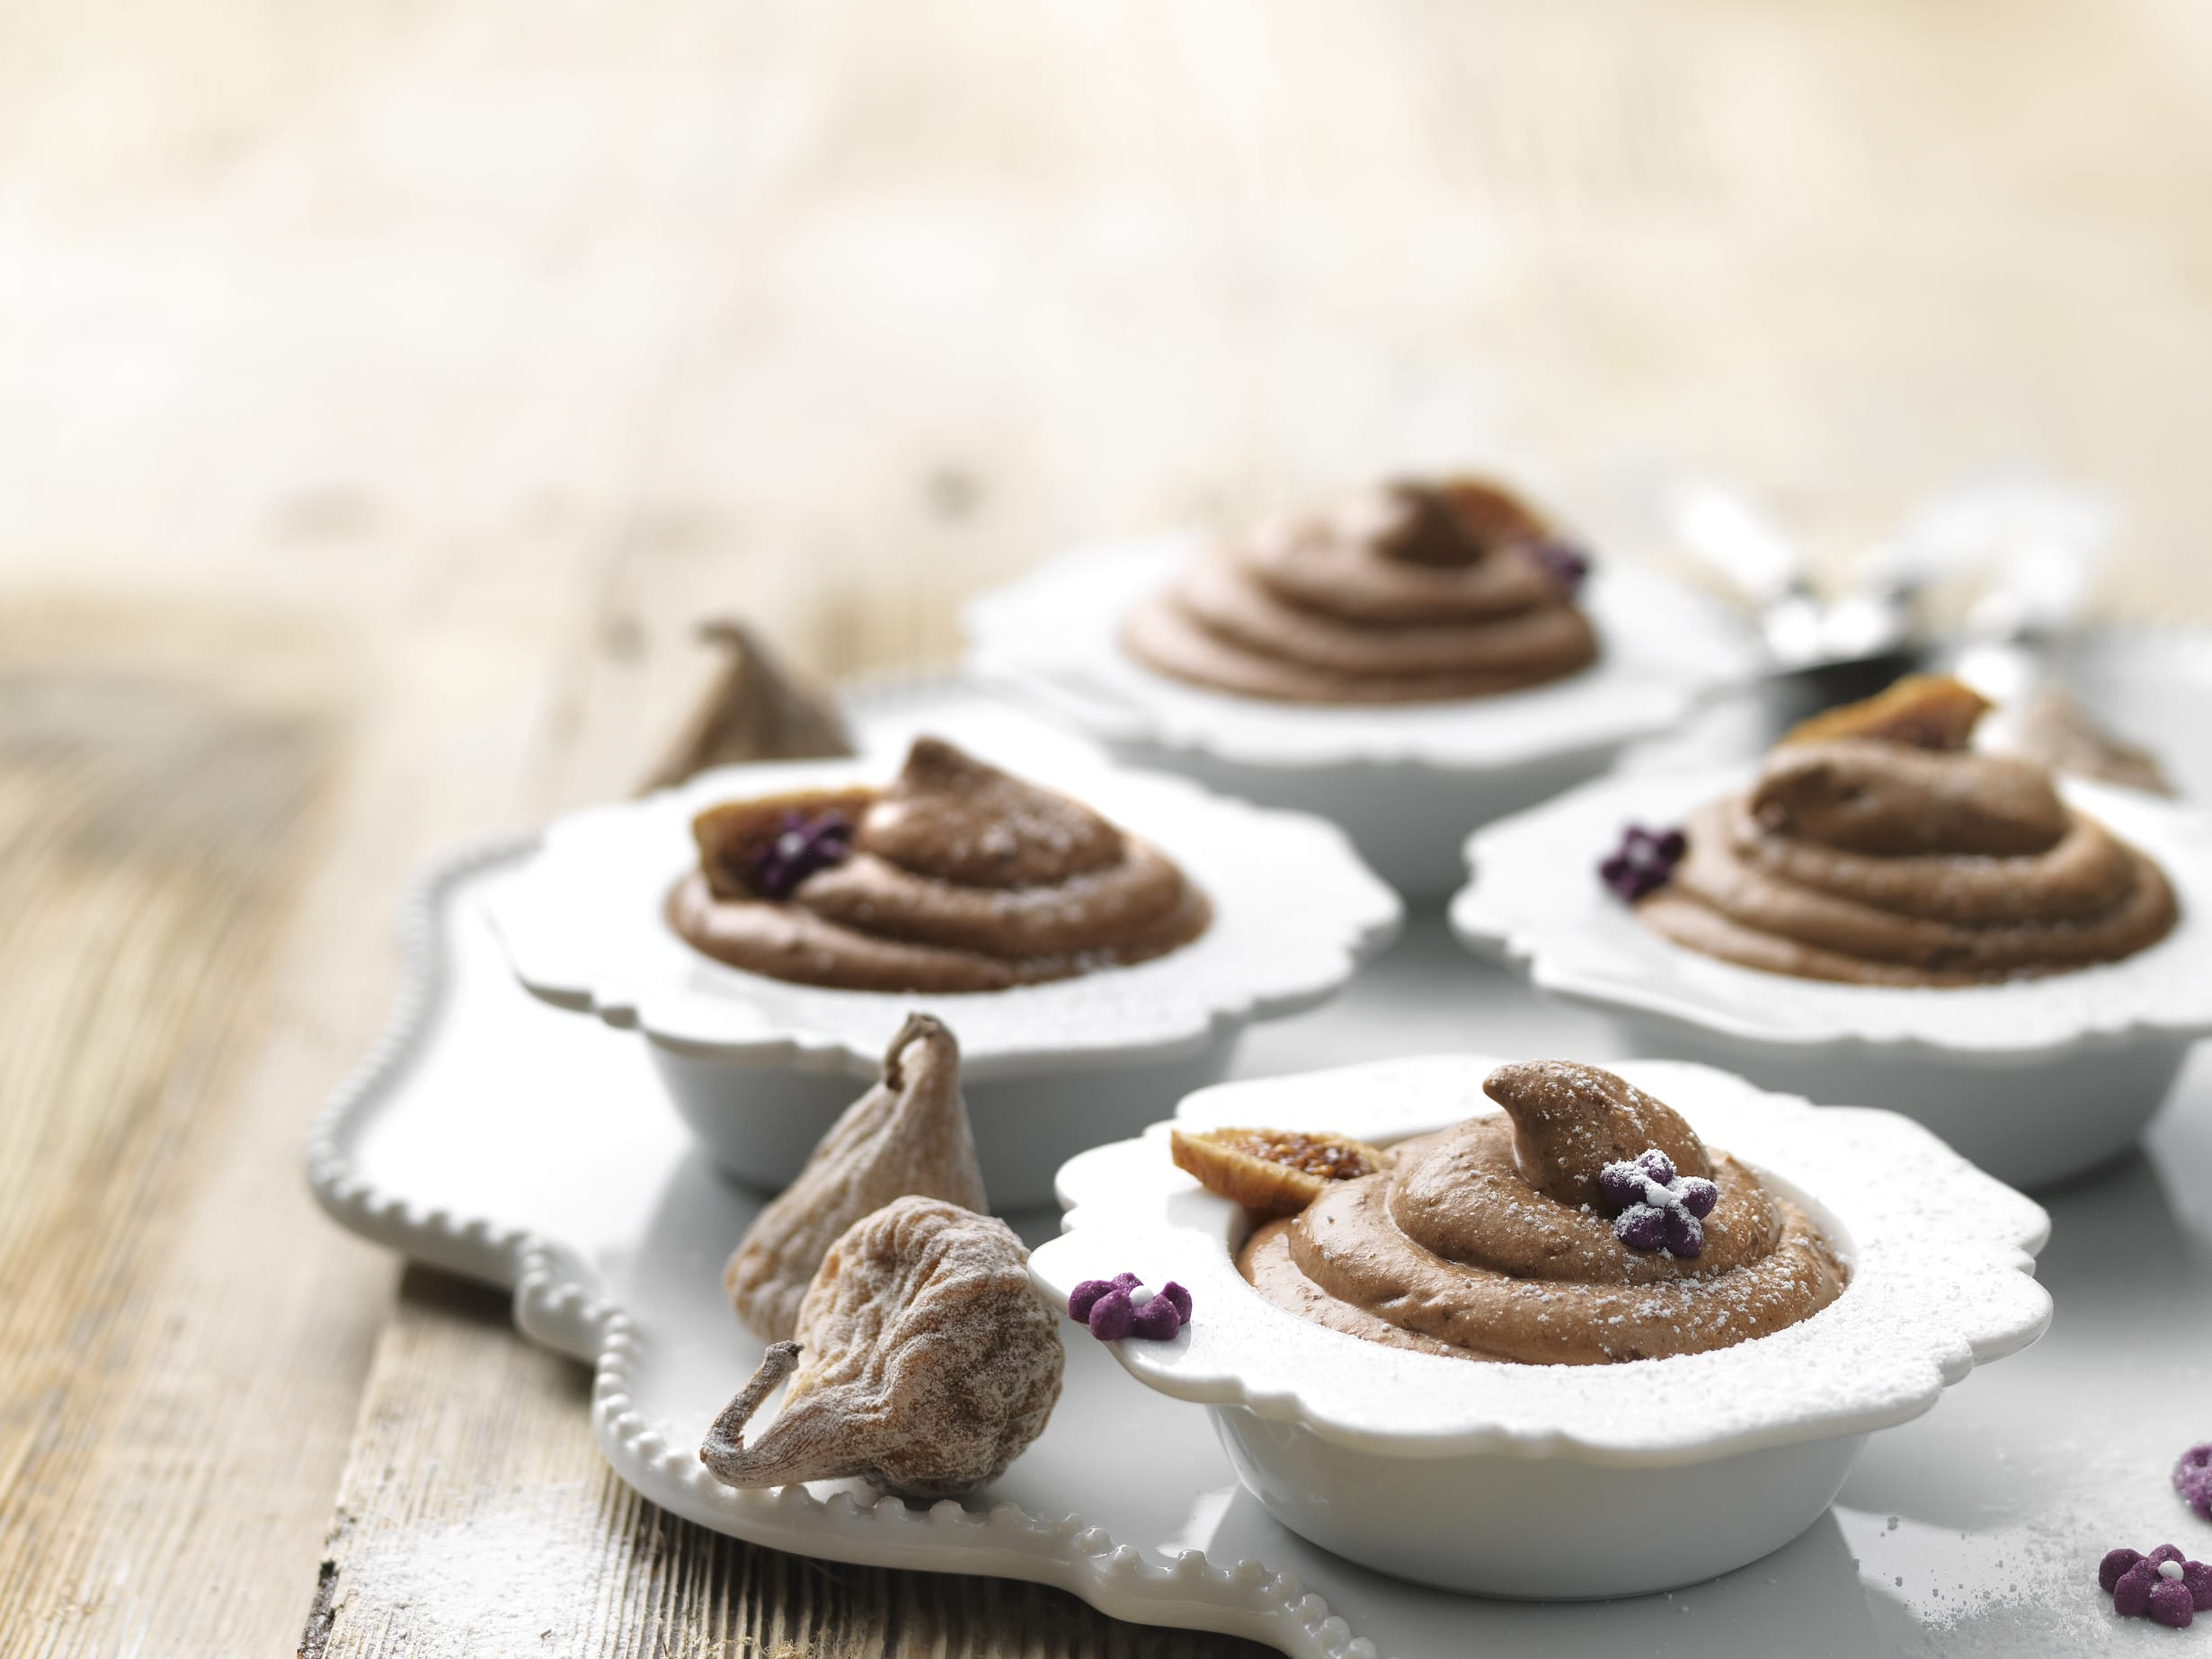 Mousse chocolat-figues